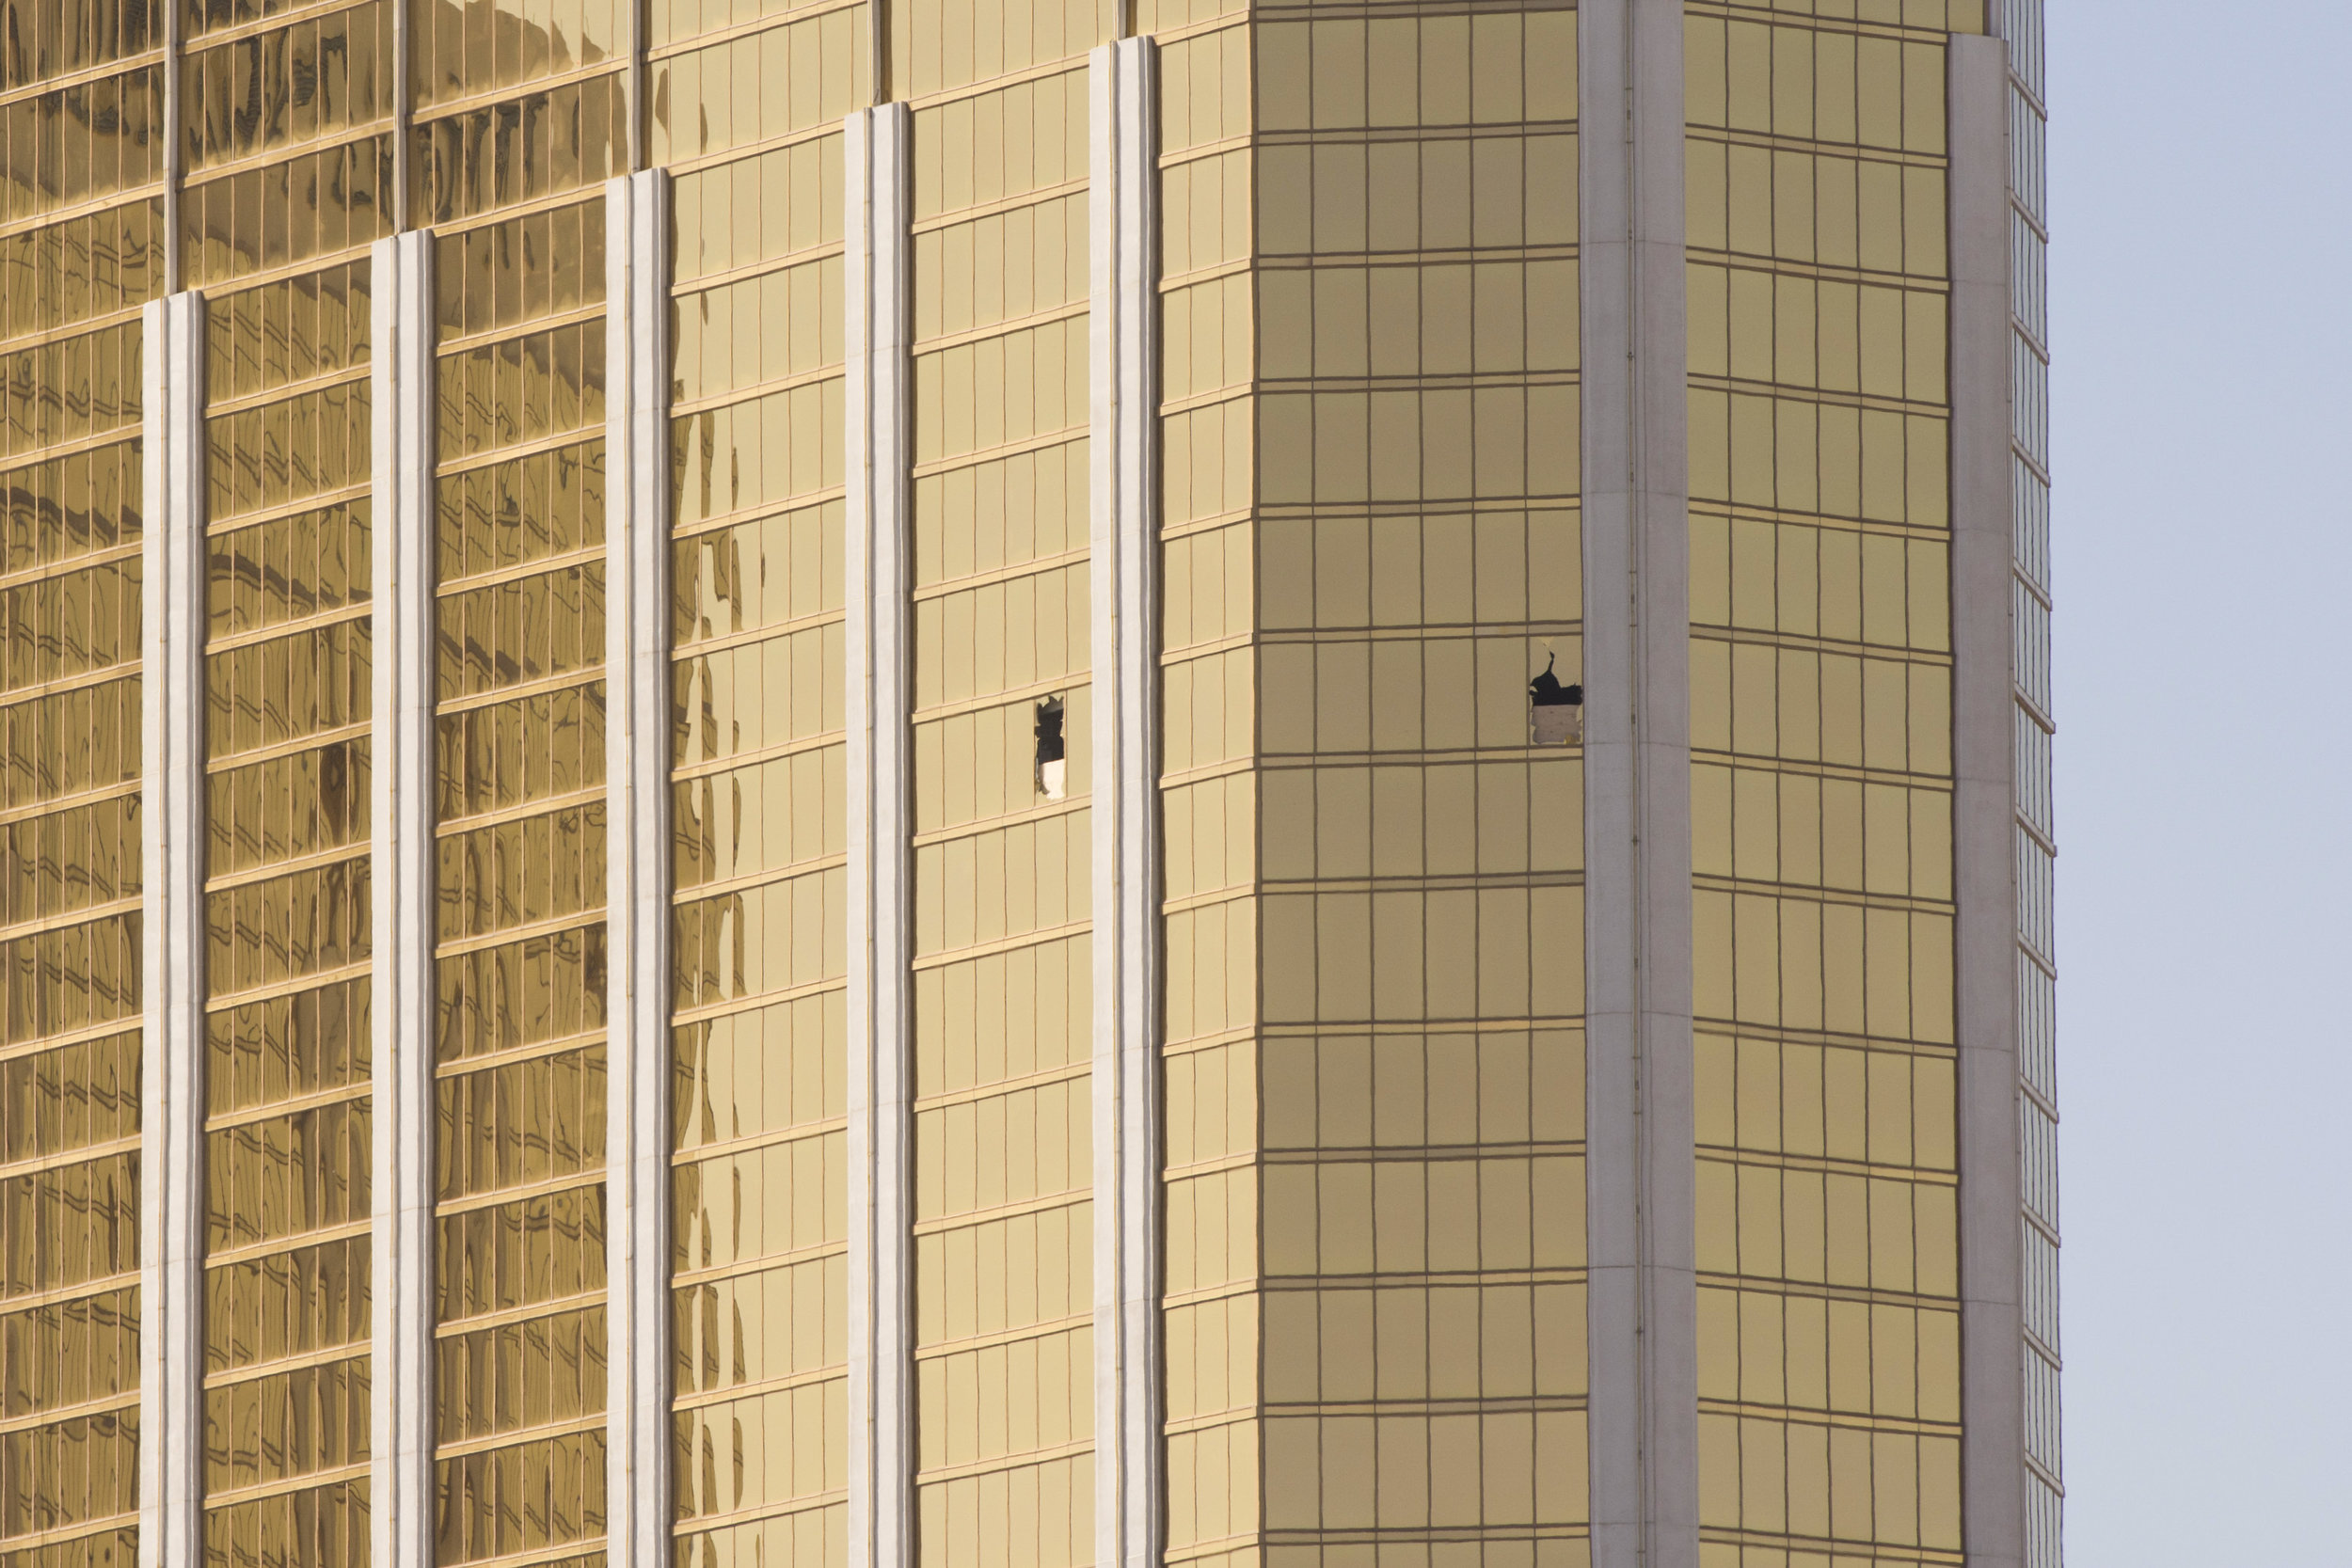 Windows are broken, showing the 32nd floor suite at Mandalay Bay hotel-casino from where Stephen Paddock shot and killed 58 concert attendees.